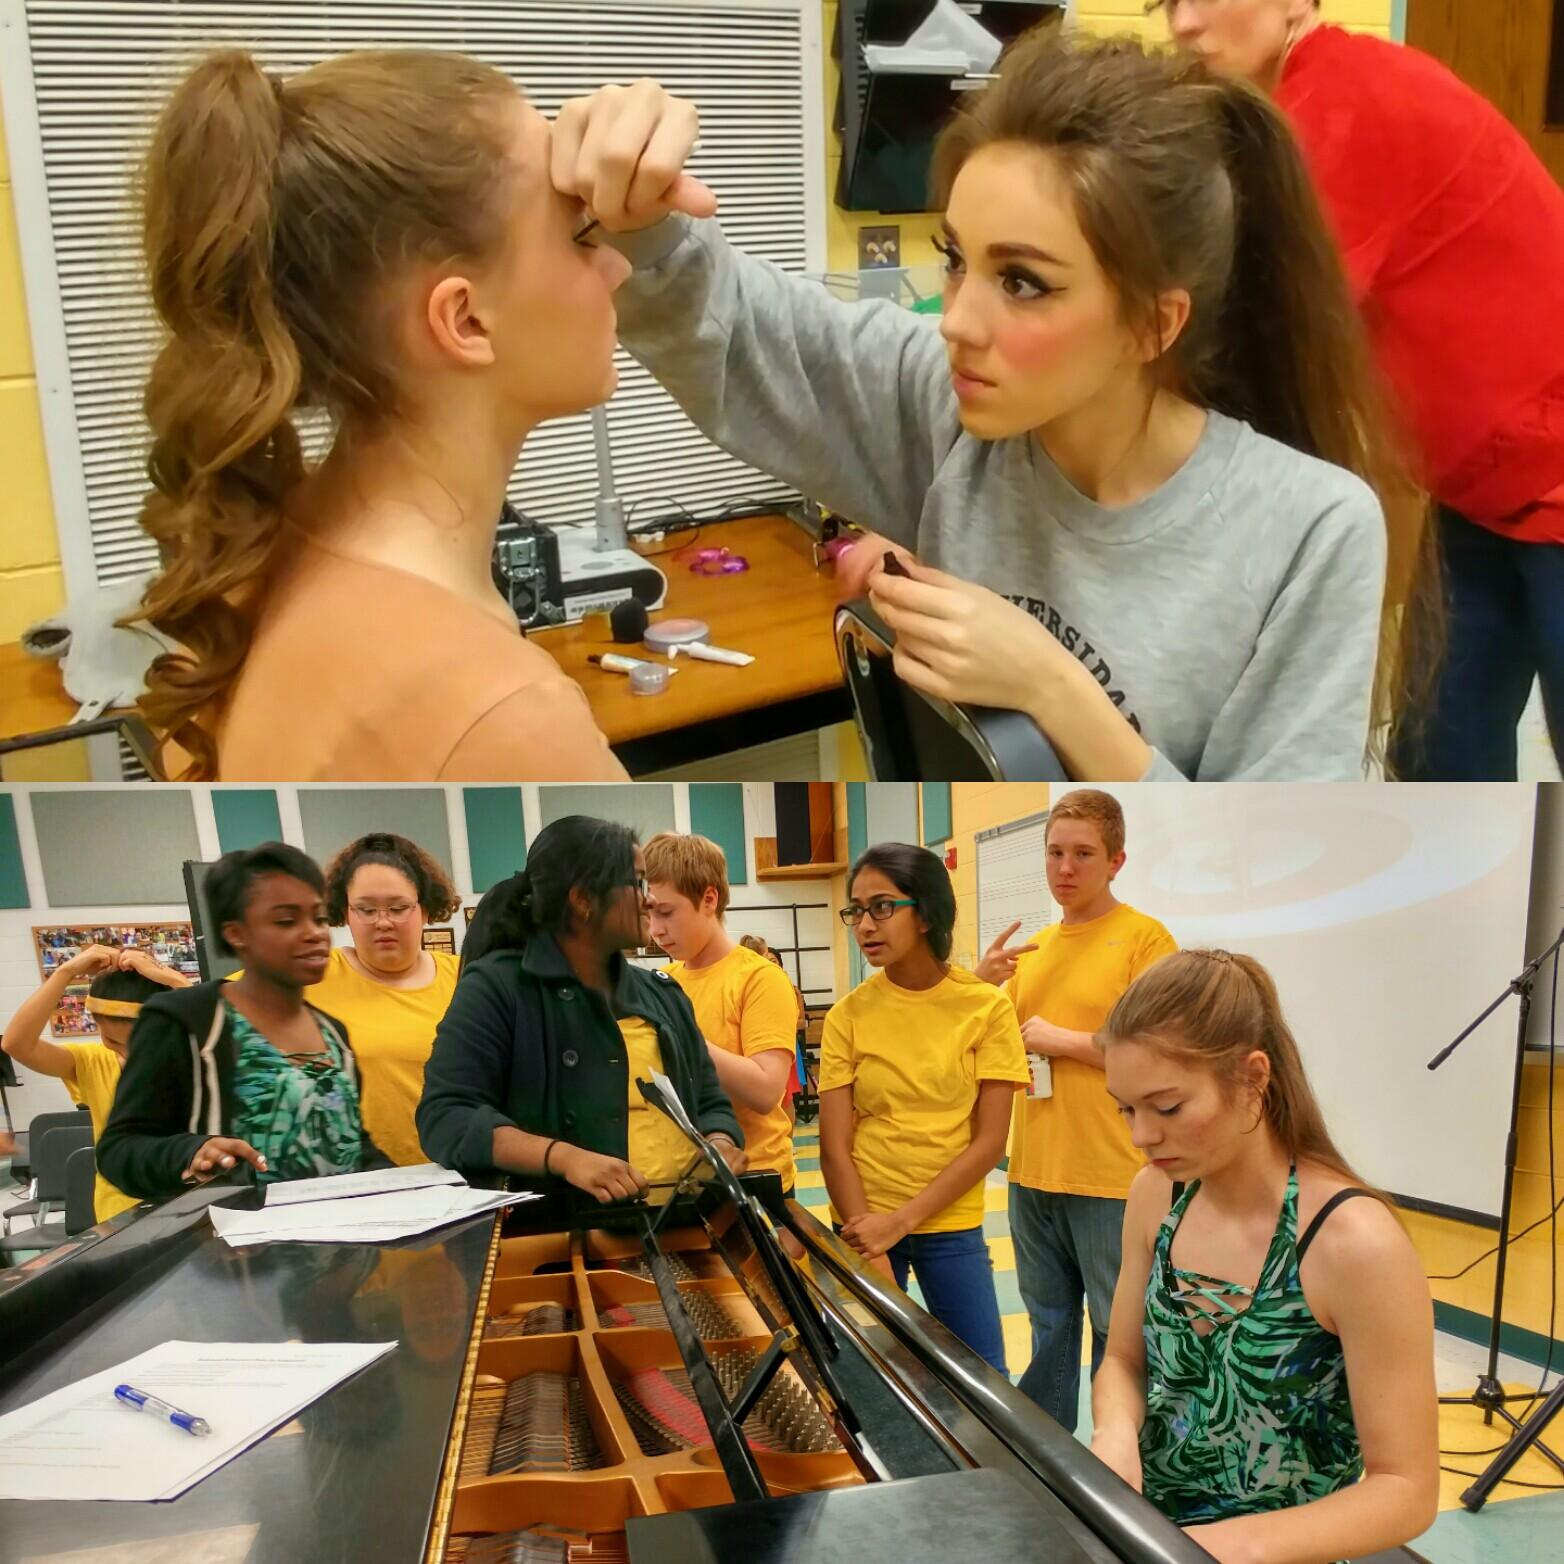 BACKSTAGE: While senior Alexa Williams and sophomore Allie Skiple perfected their makeup, students from both Friendship and Grove junior high schools rehearsed their parts just moments before going onstage.